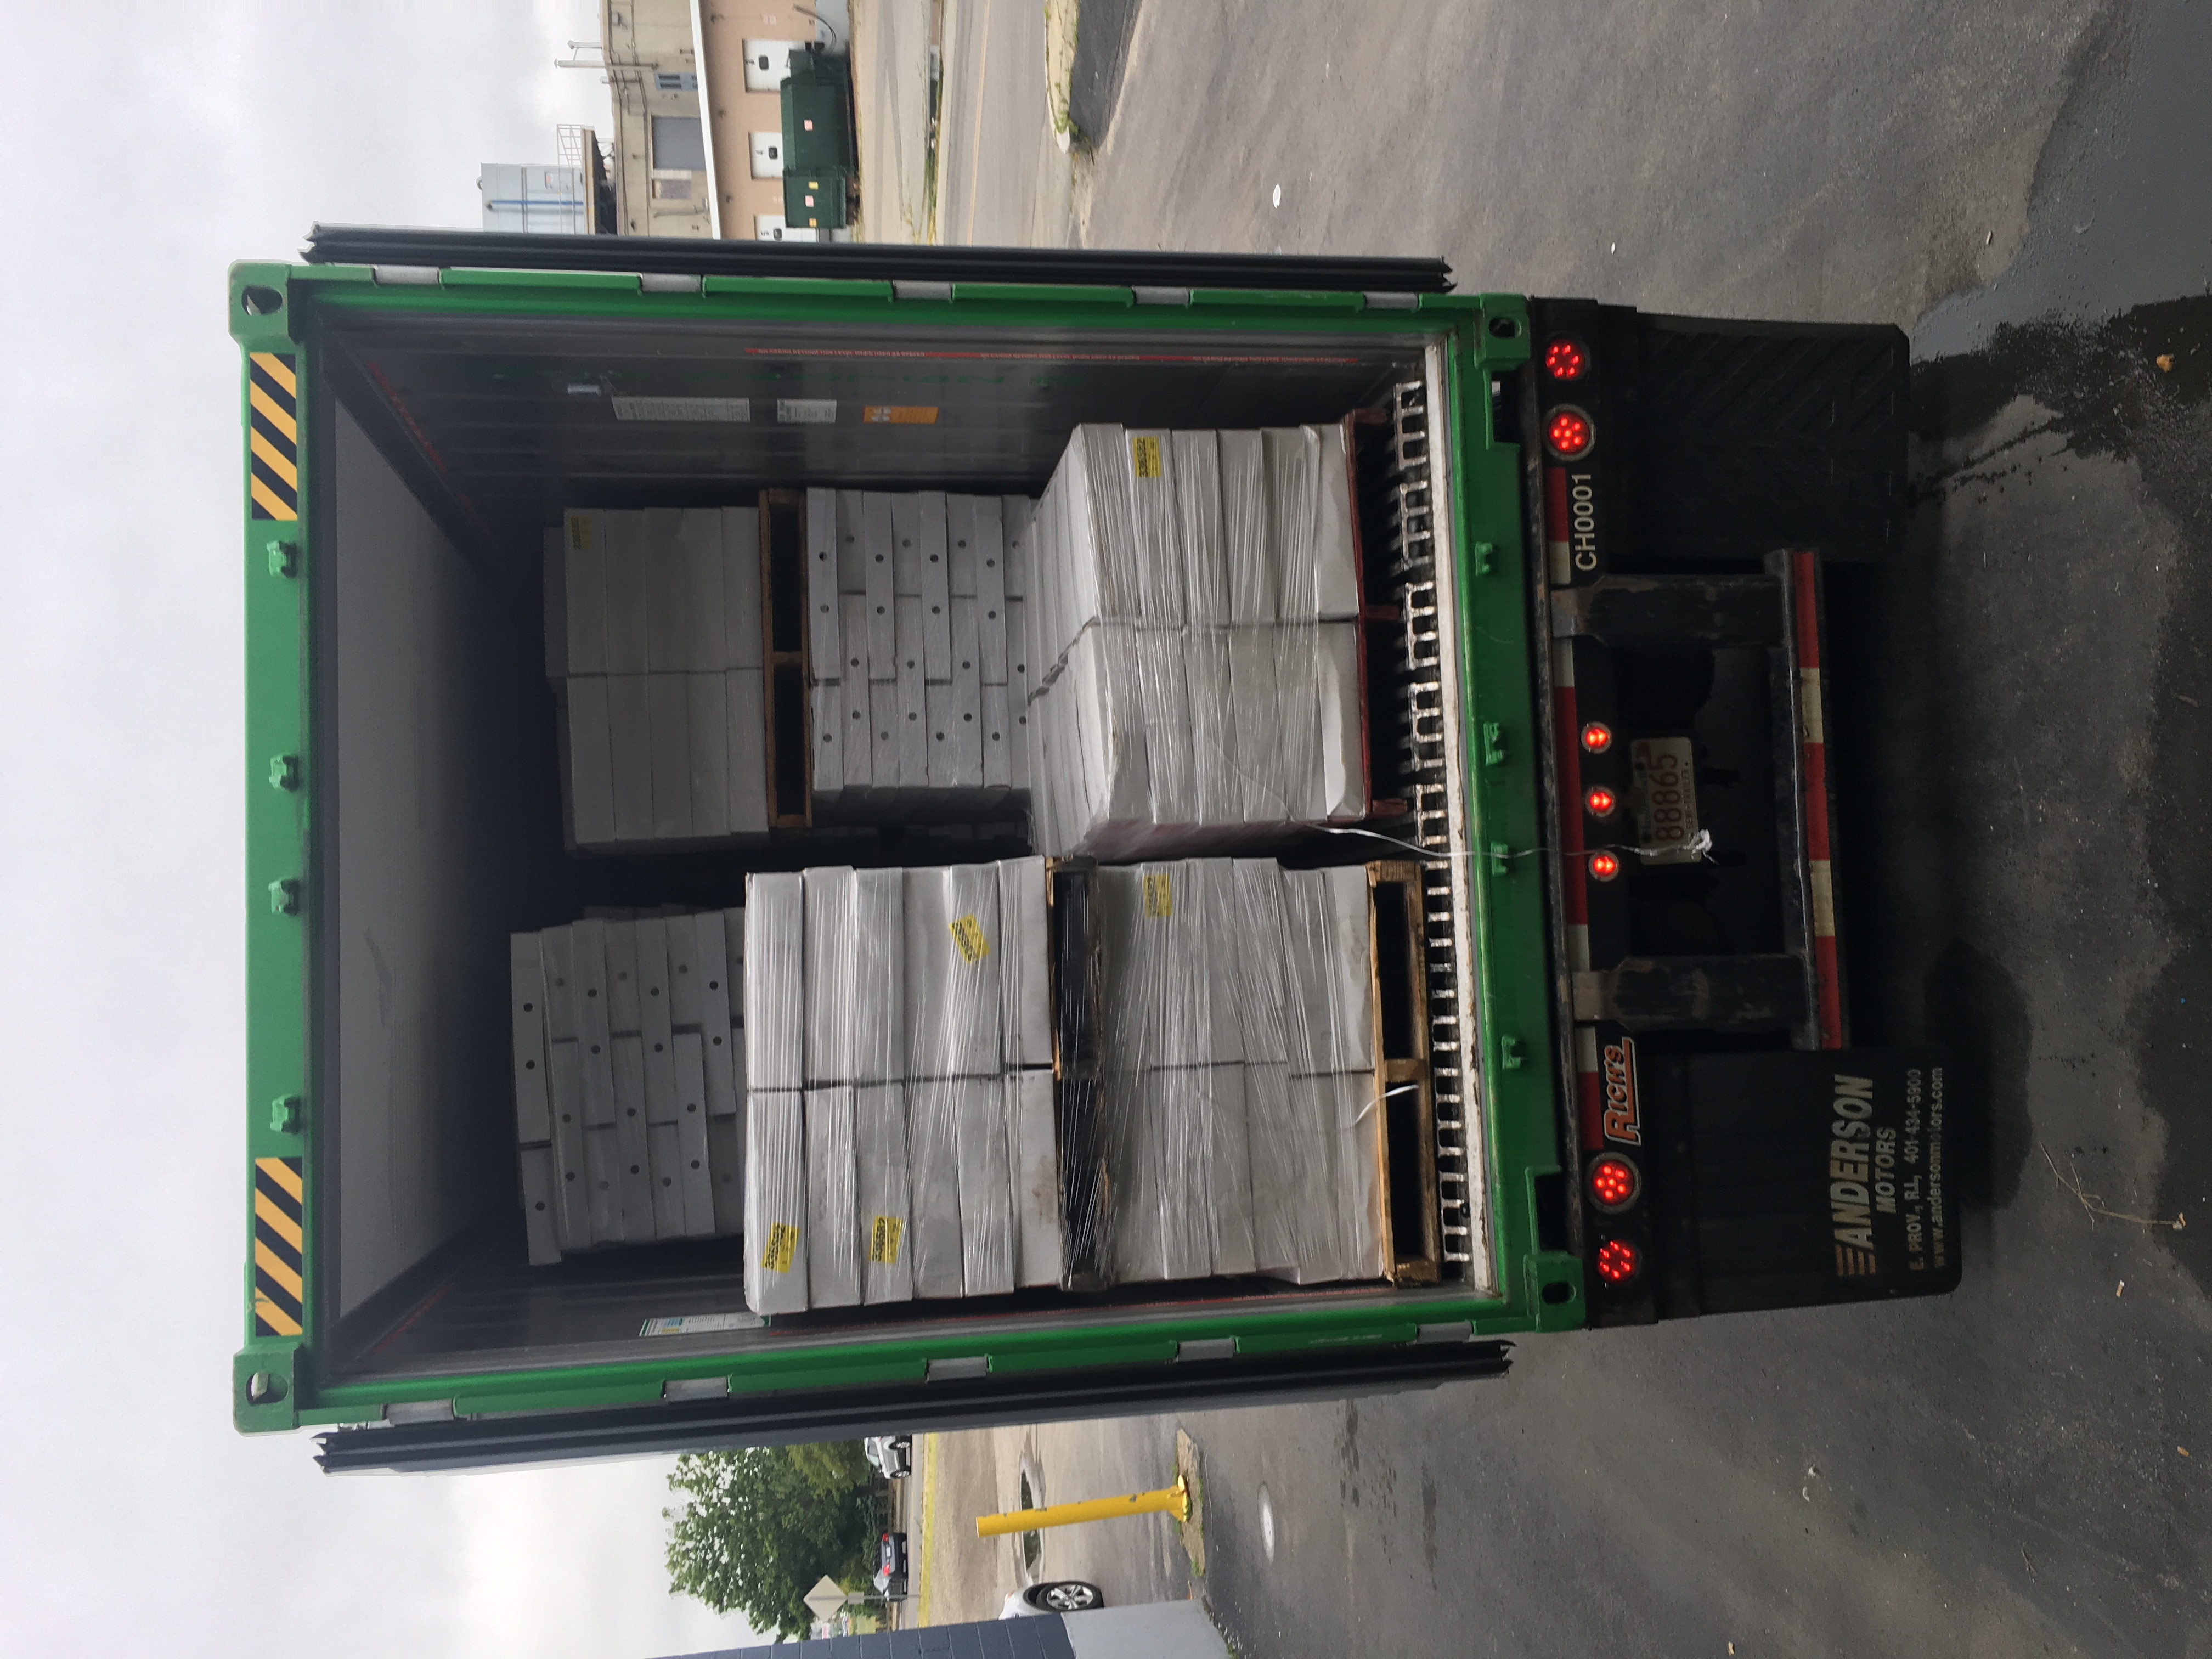 A delivery truck being loaded with pallets of fish.